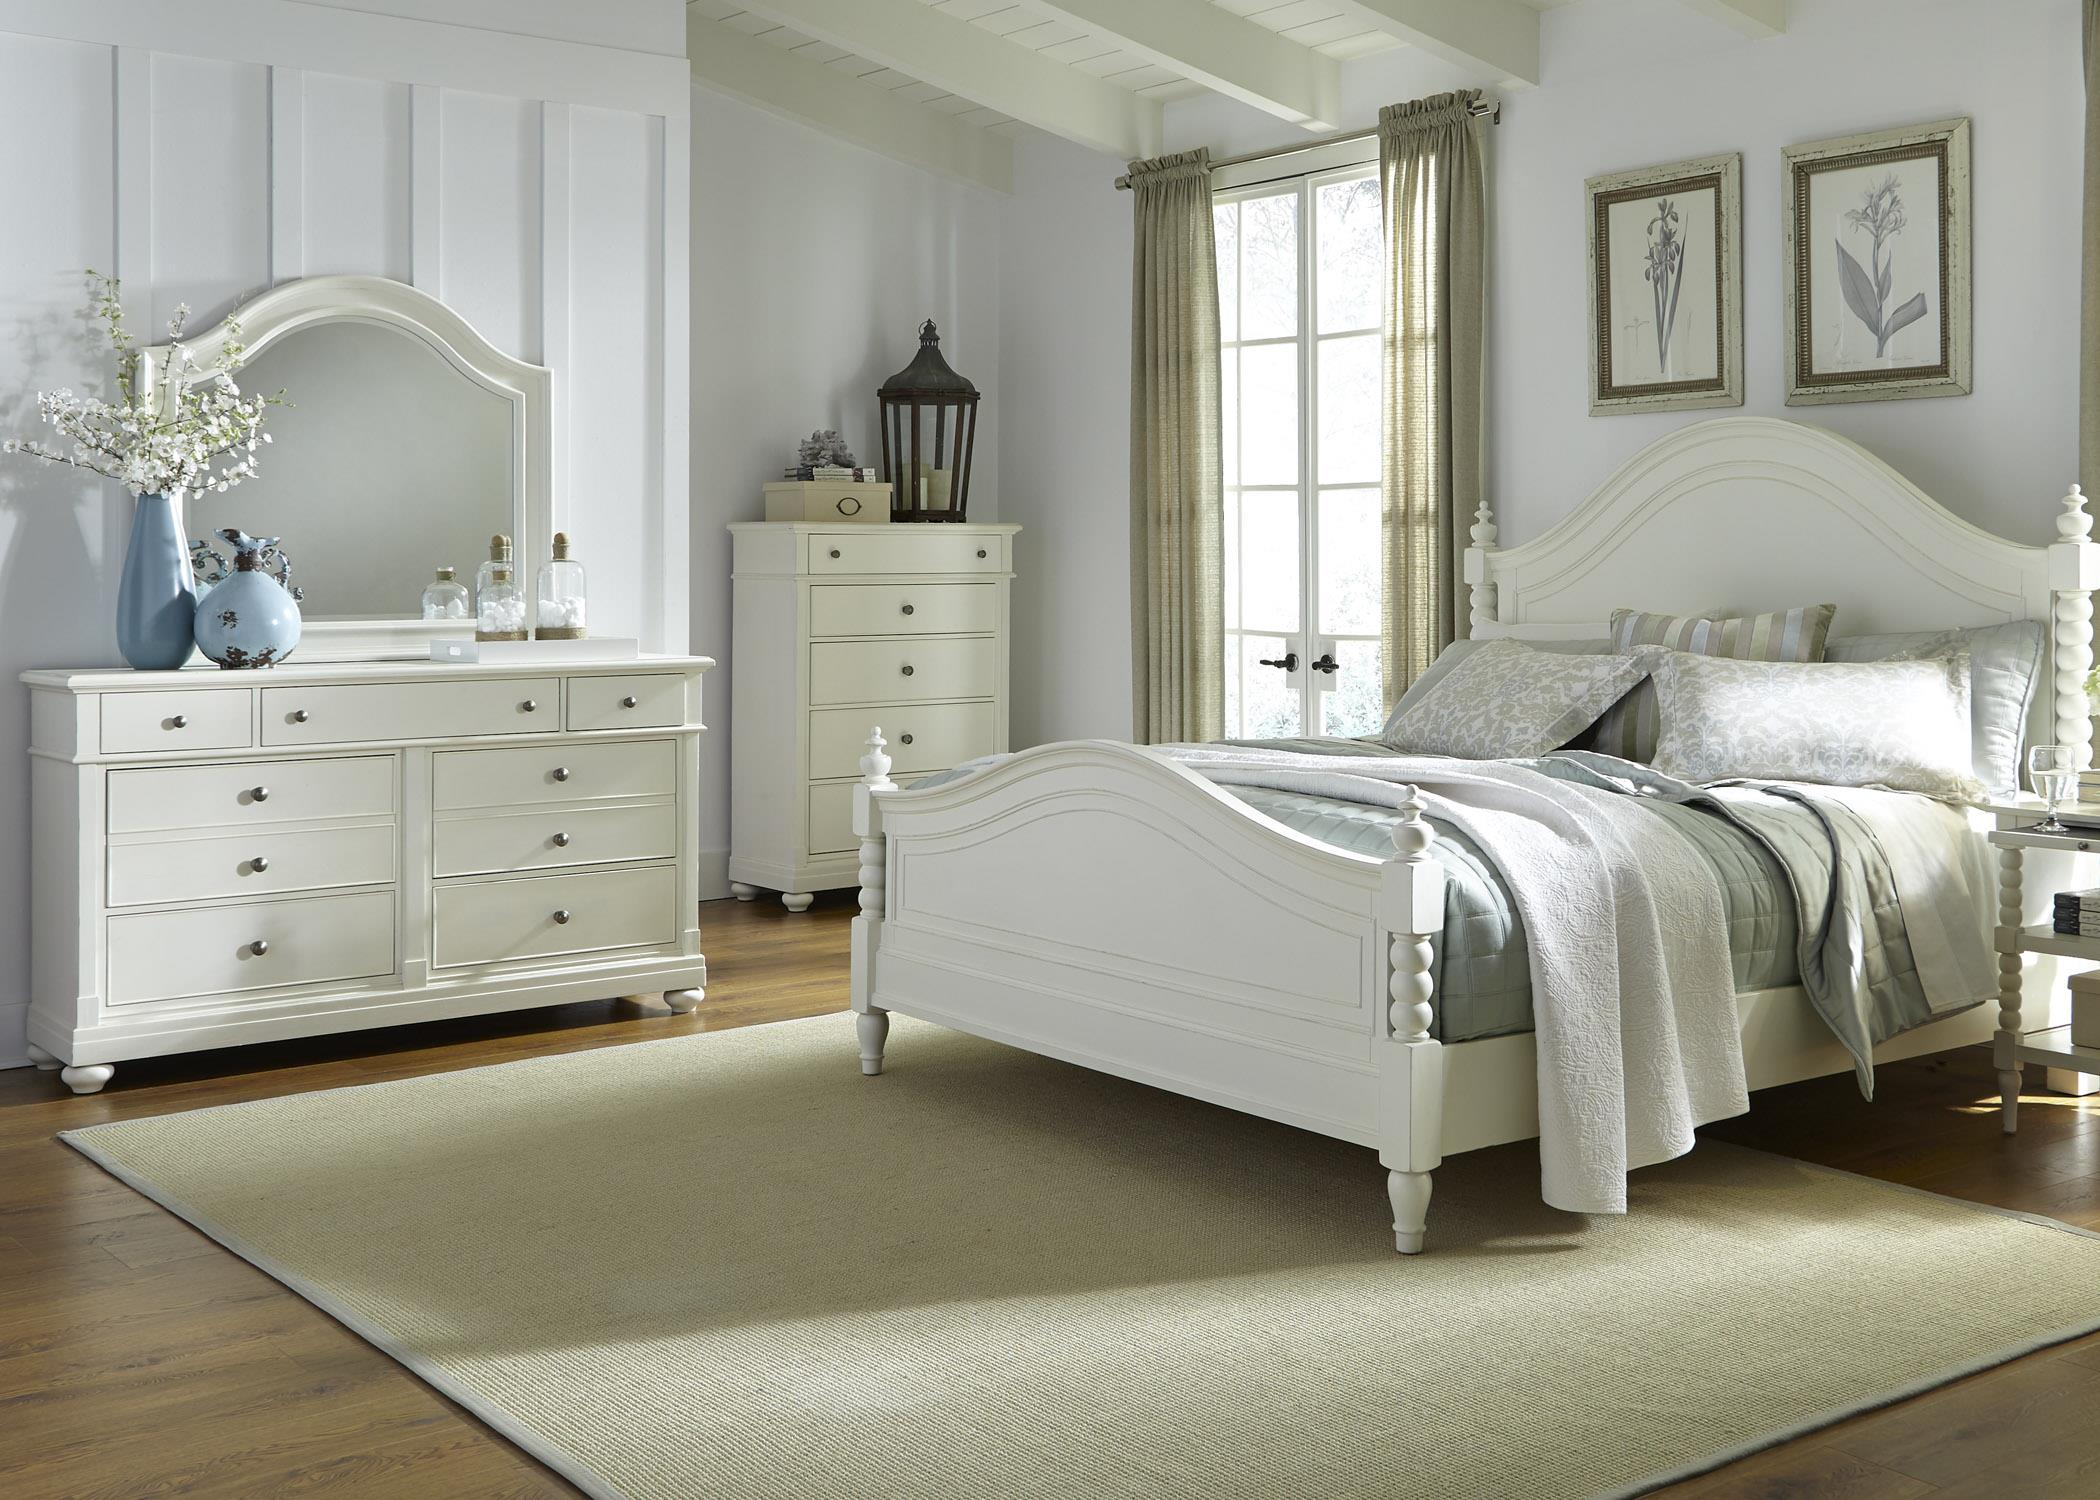 Liberty Furniture Harbor View King Bedroom Group - Item Number: 631-BR-KPSDMC